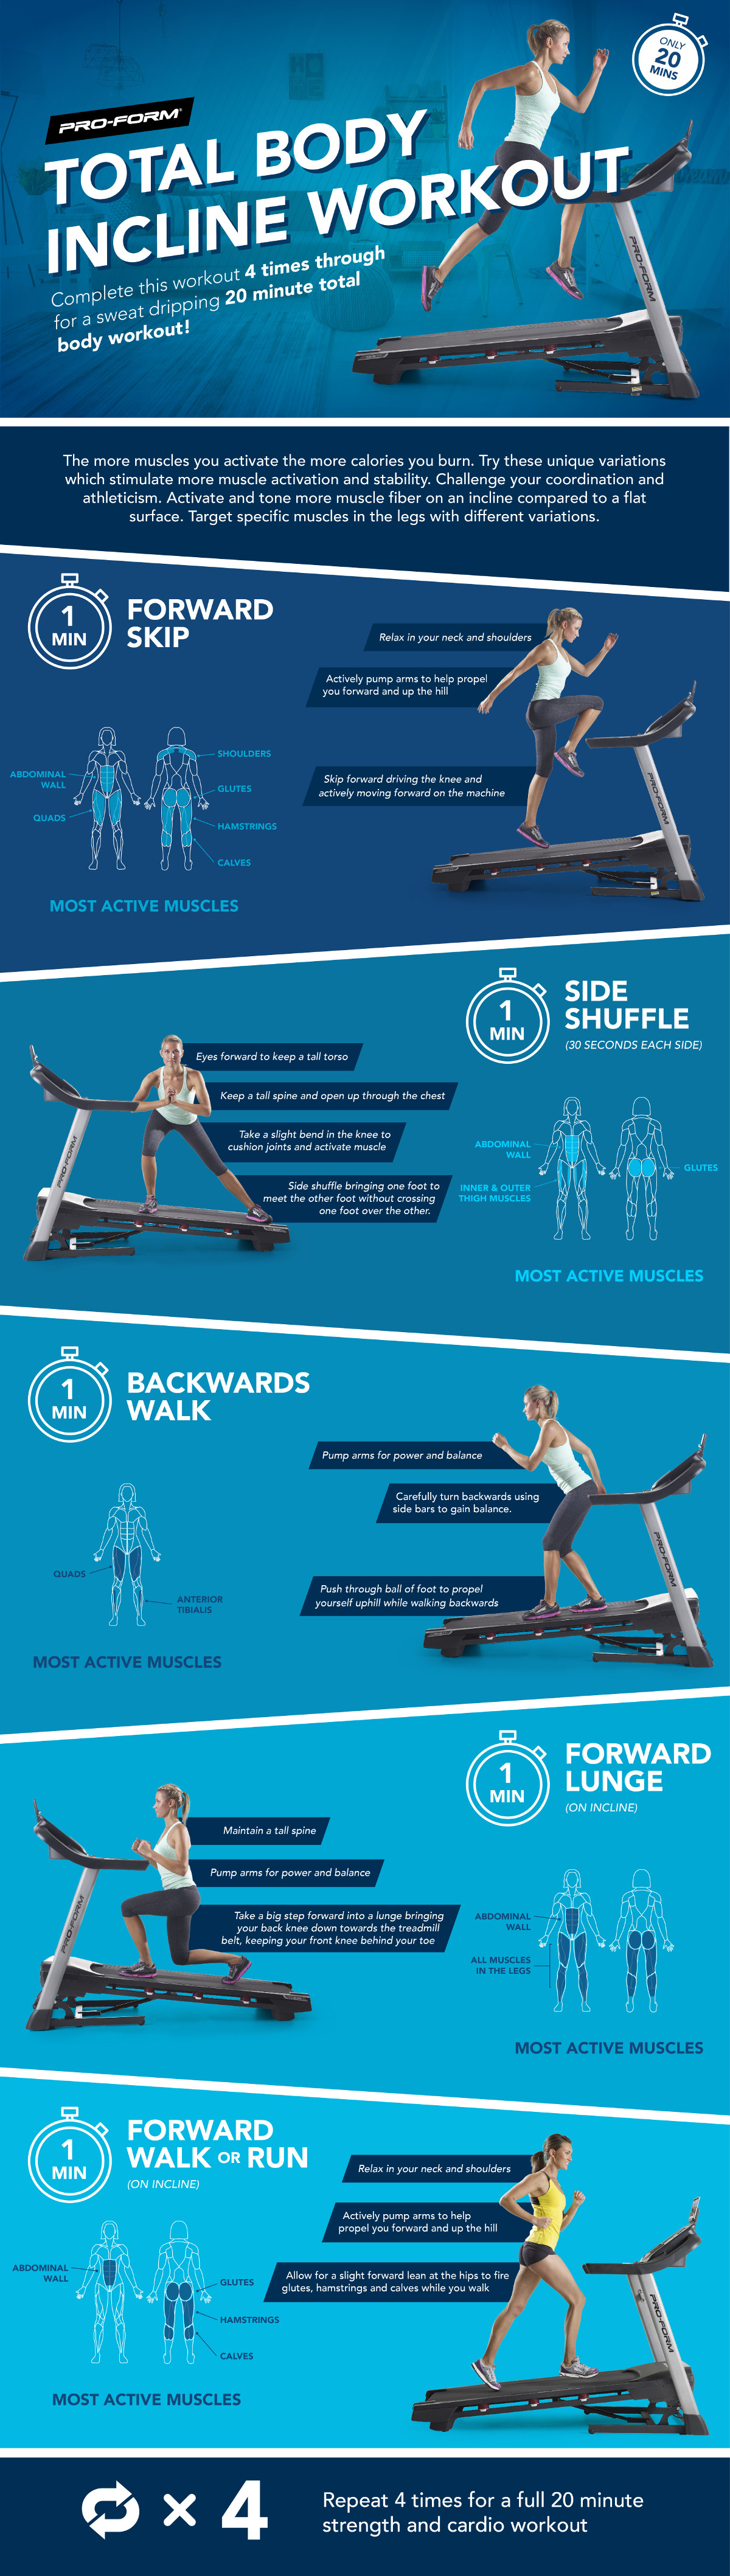 Total Body Incline Workout